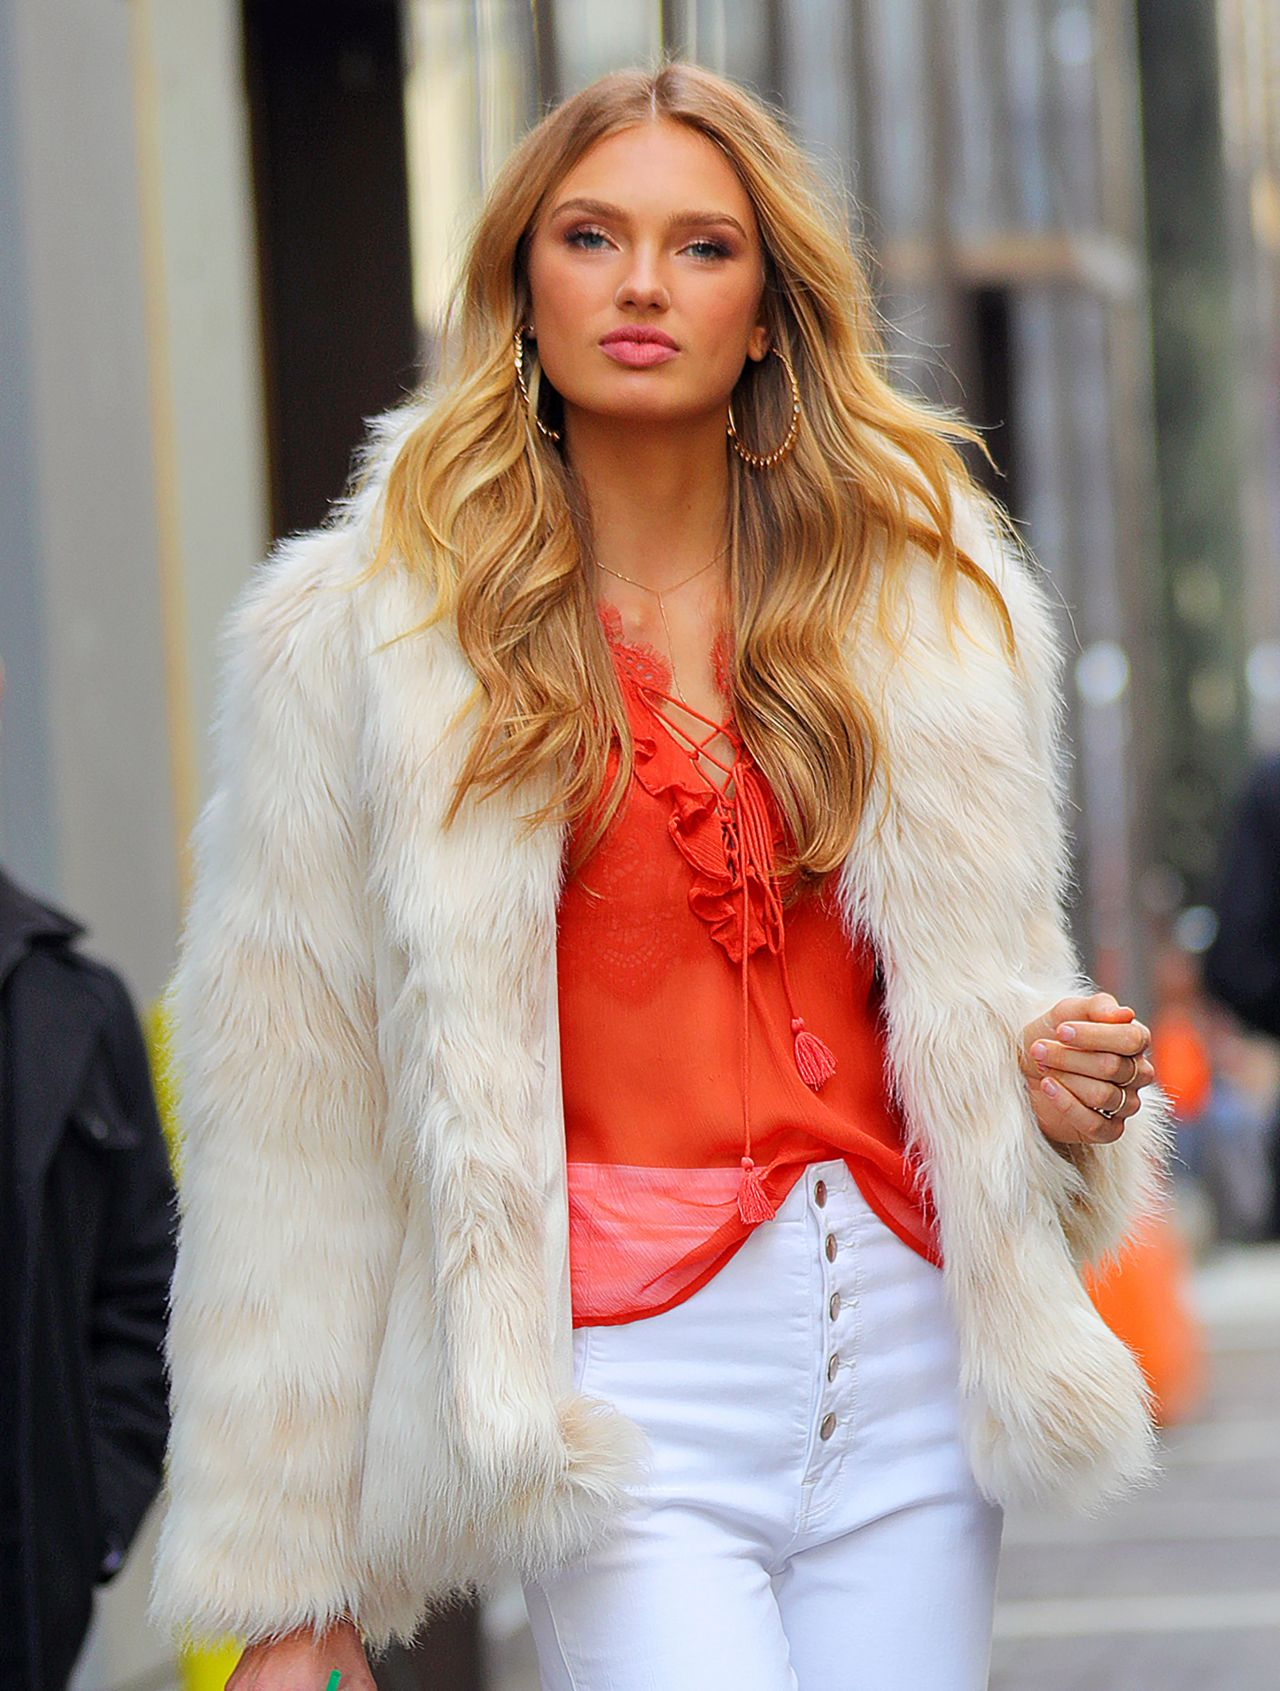 romee strijd in a fur jacket in new york city 2 28 2017. Black Bedroom Furniture Sets. Home Design Ideas